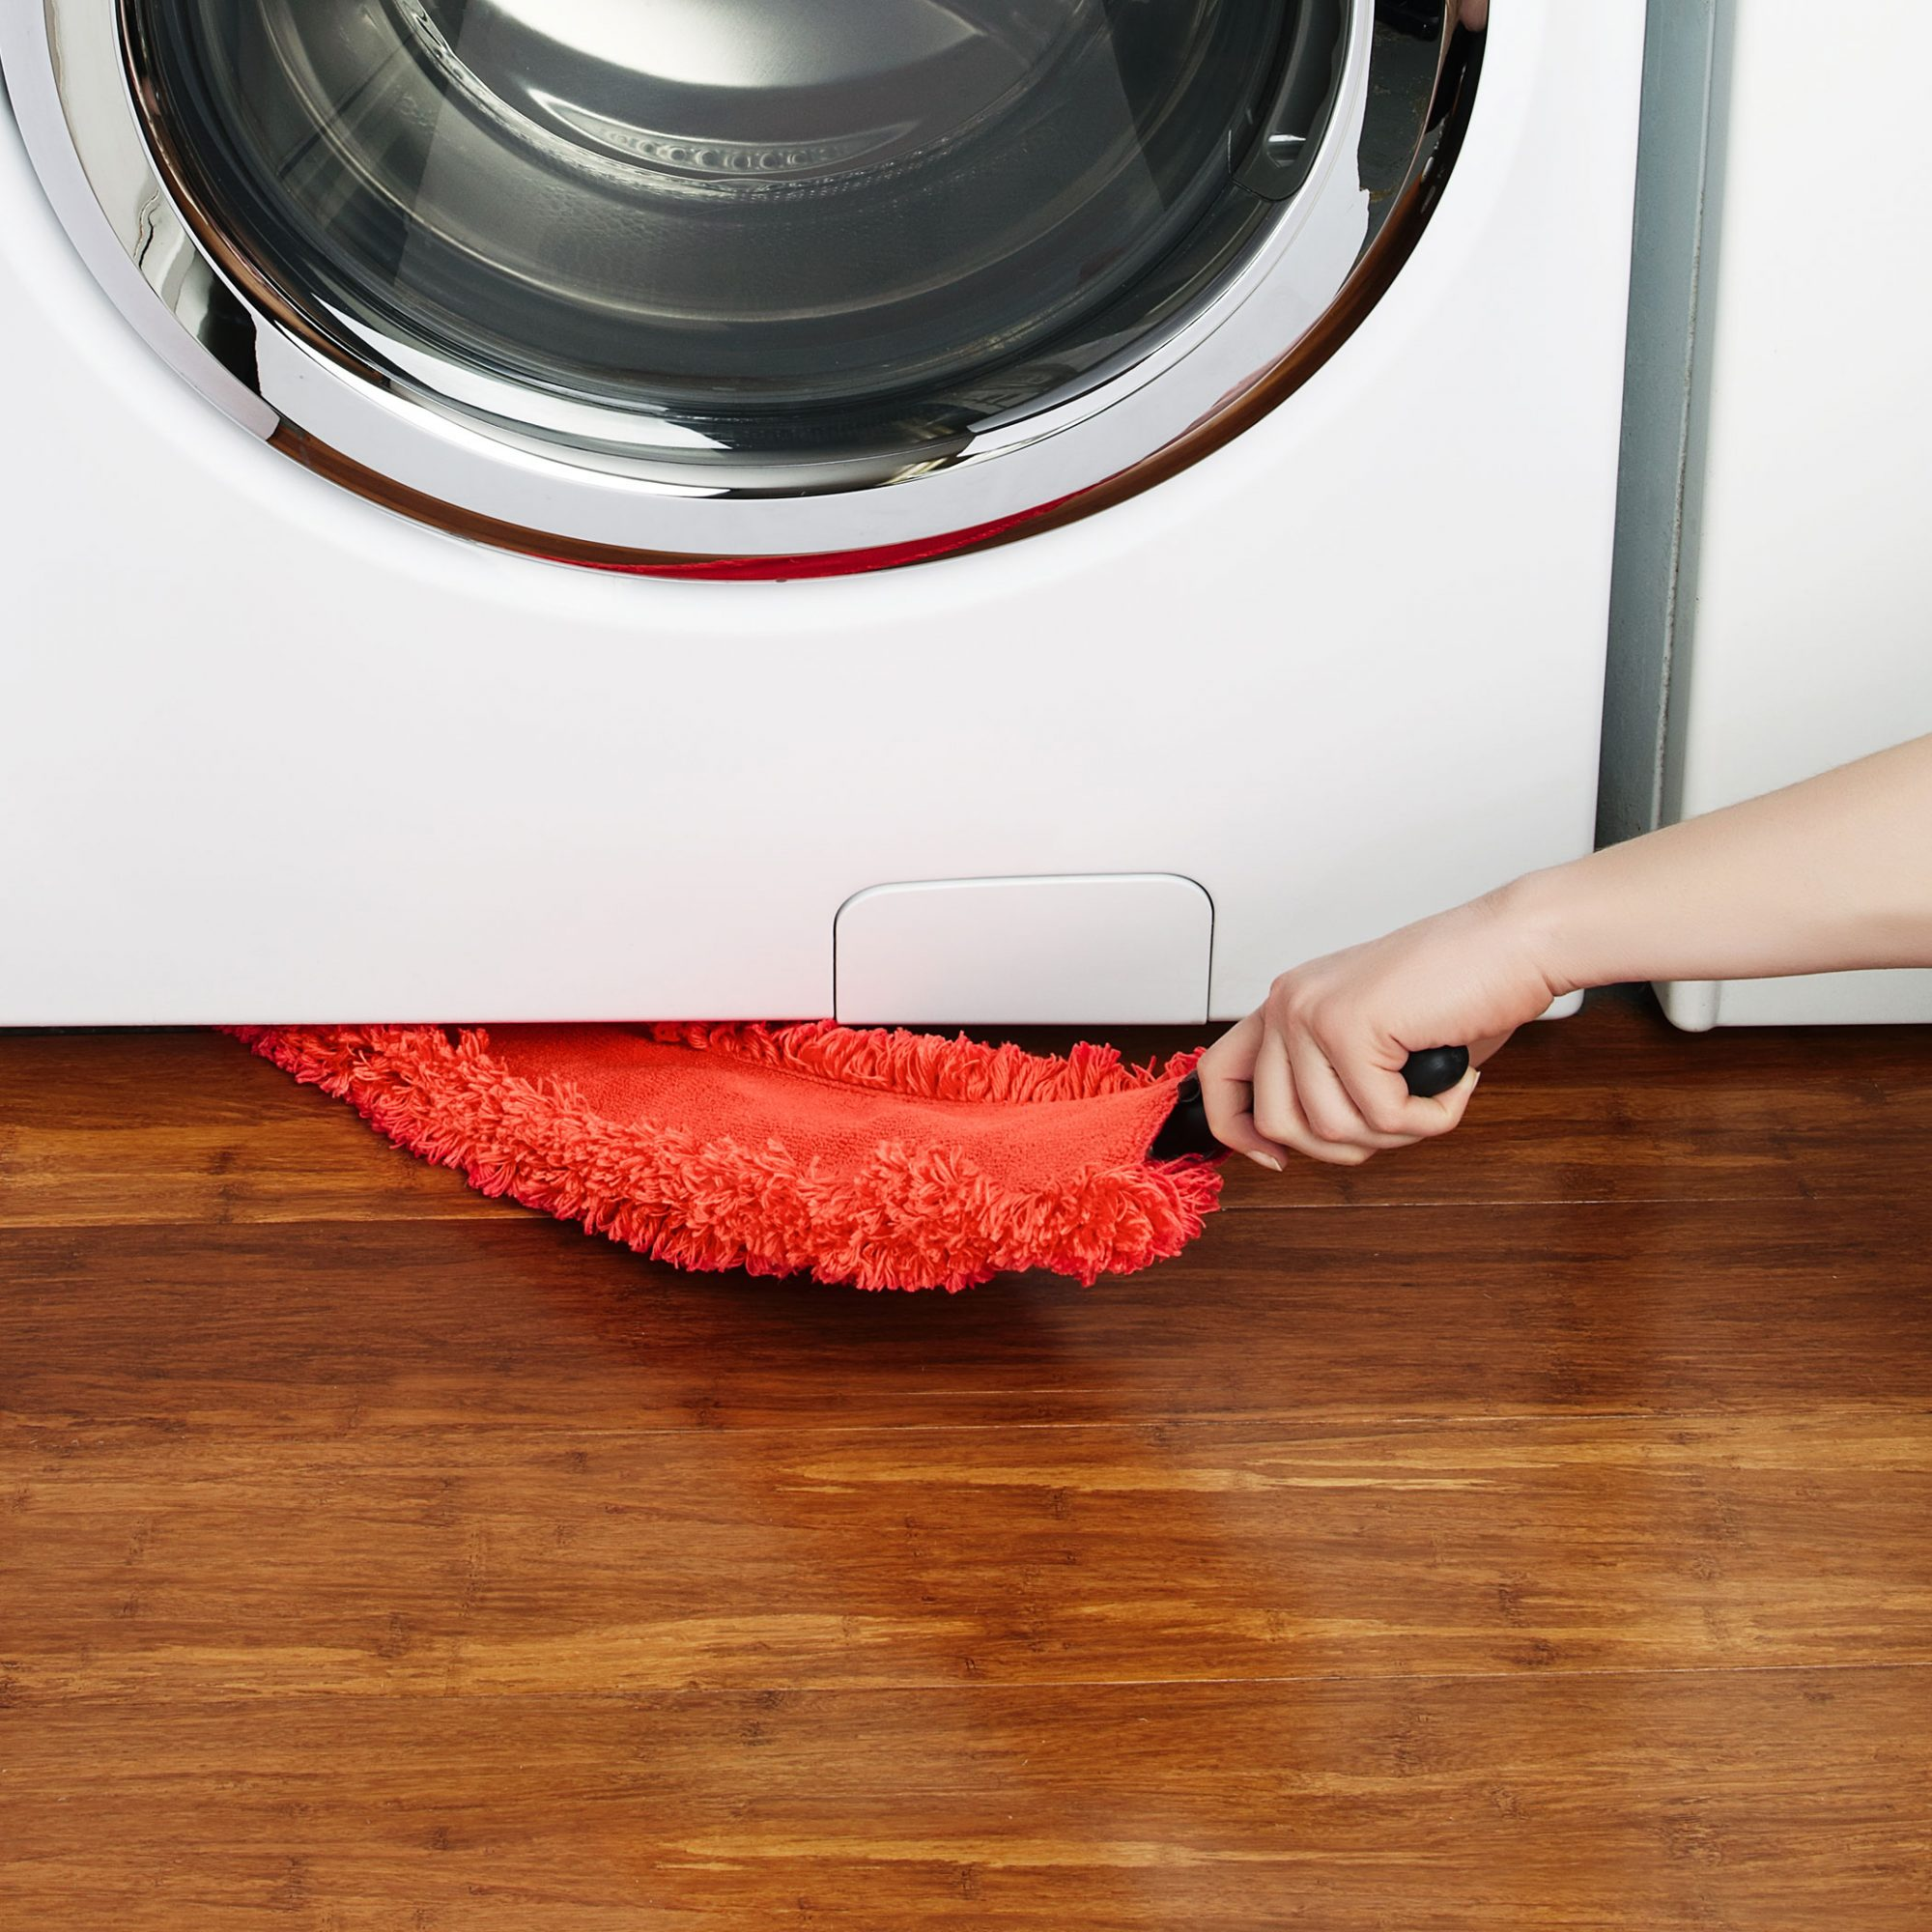 Easily Clean Under Your Fridge and Stove with This Microfiber Duster